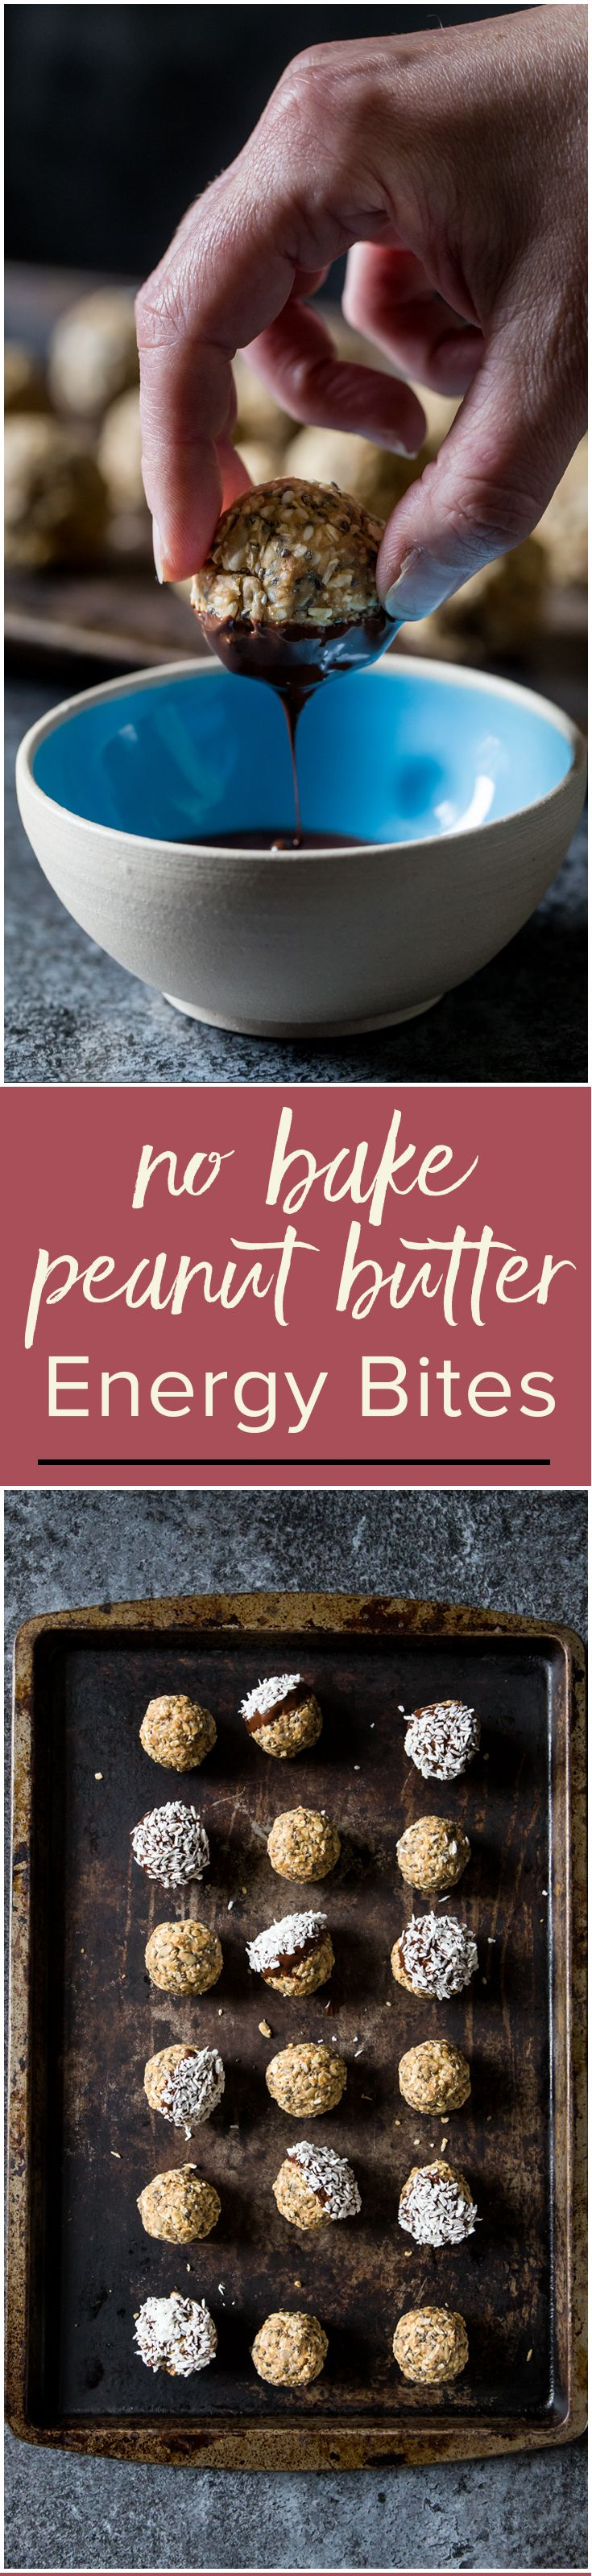 These no bake peanut butter energy bites are the fastest way to effortless snack time. | www.wildeorchard.co.uk